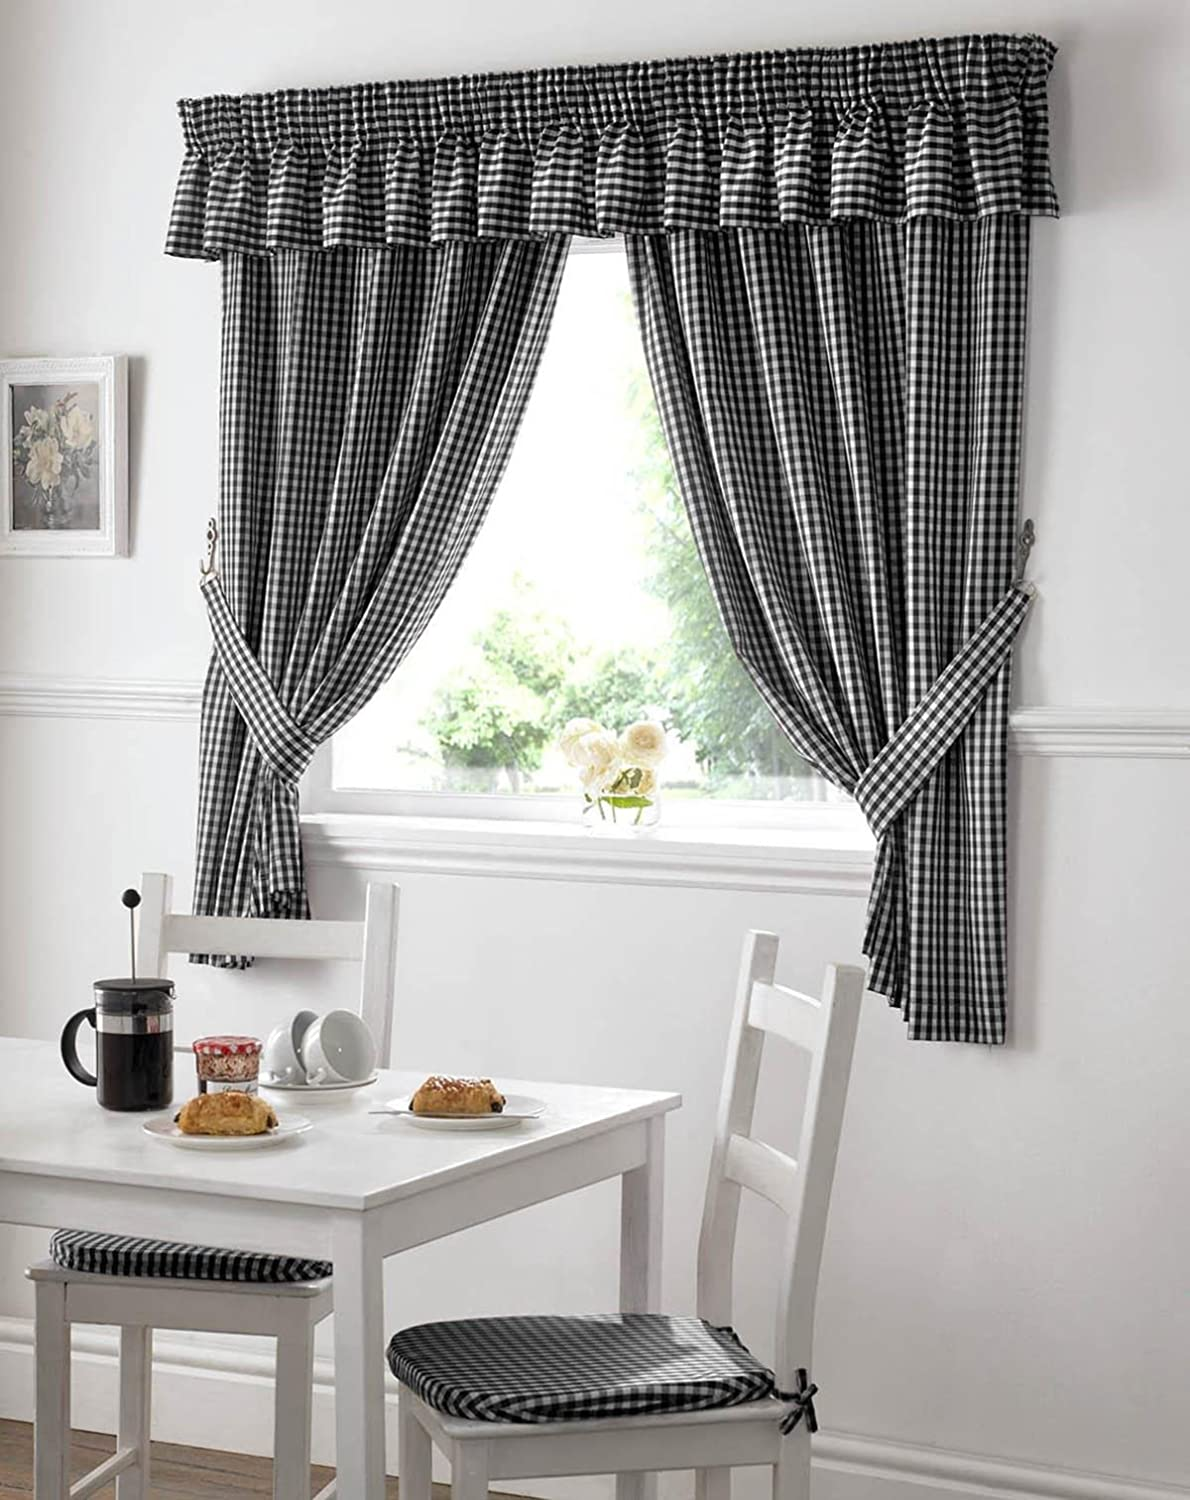 Gingham kitchen curtains black 46 x 48